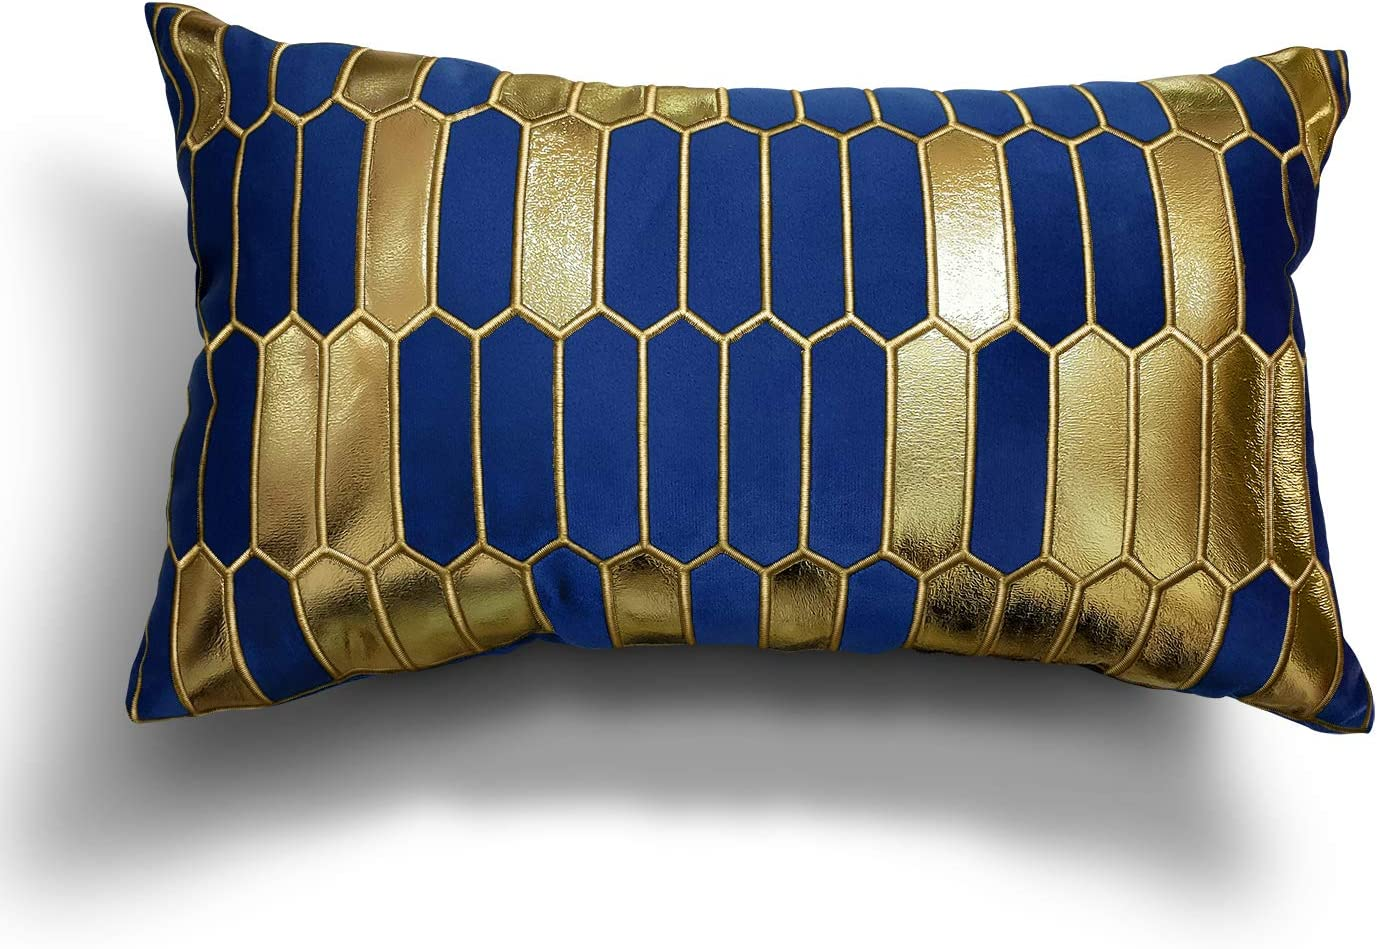 MENGT Blue and Gold Throw Pillow Cover 12x20 Inches Soft Velvet Material, Embroidery Decorative Pillow Case, Modern Design Luxury European Cushion Case for Couch Living Room Bedroom